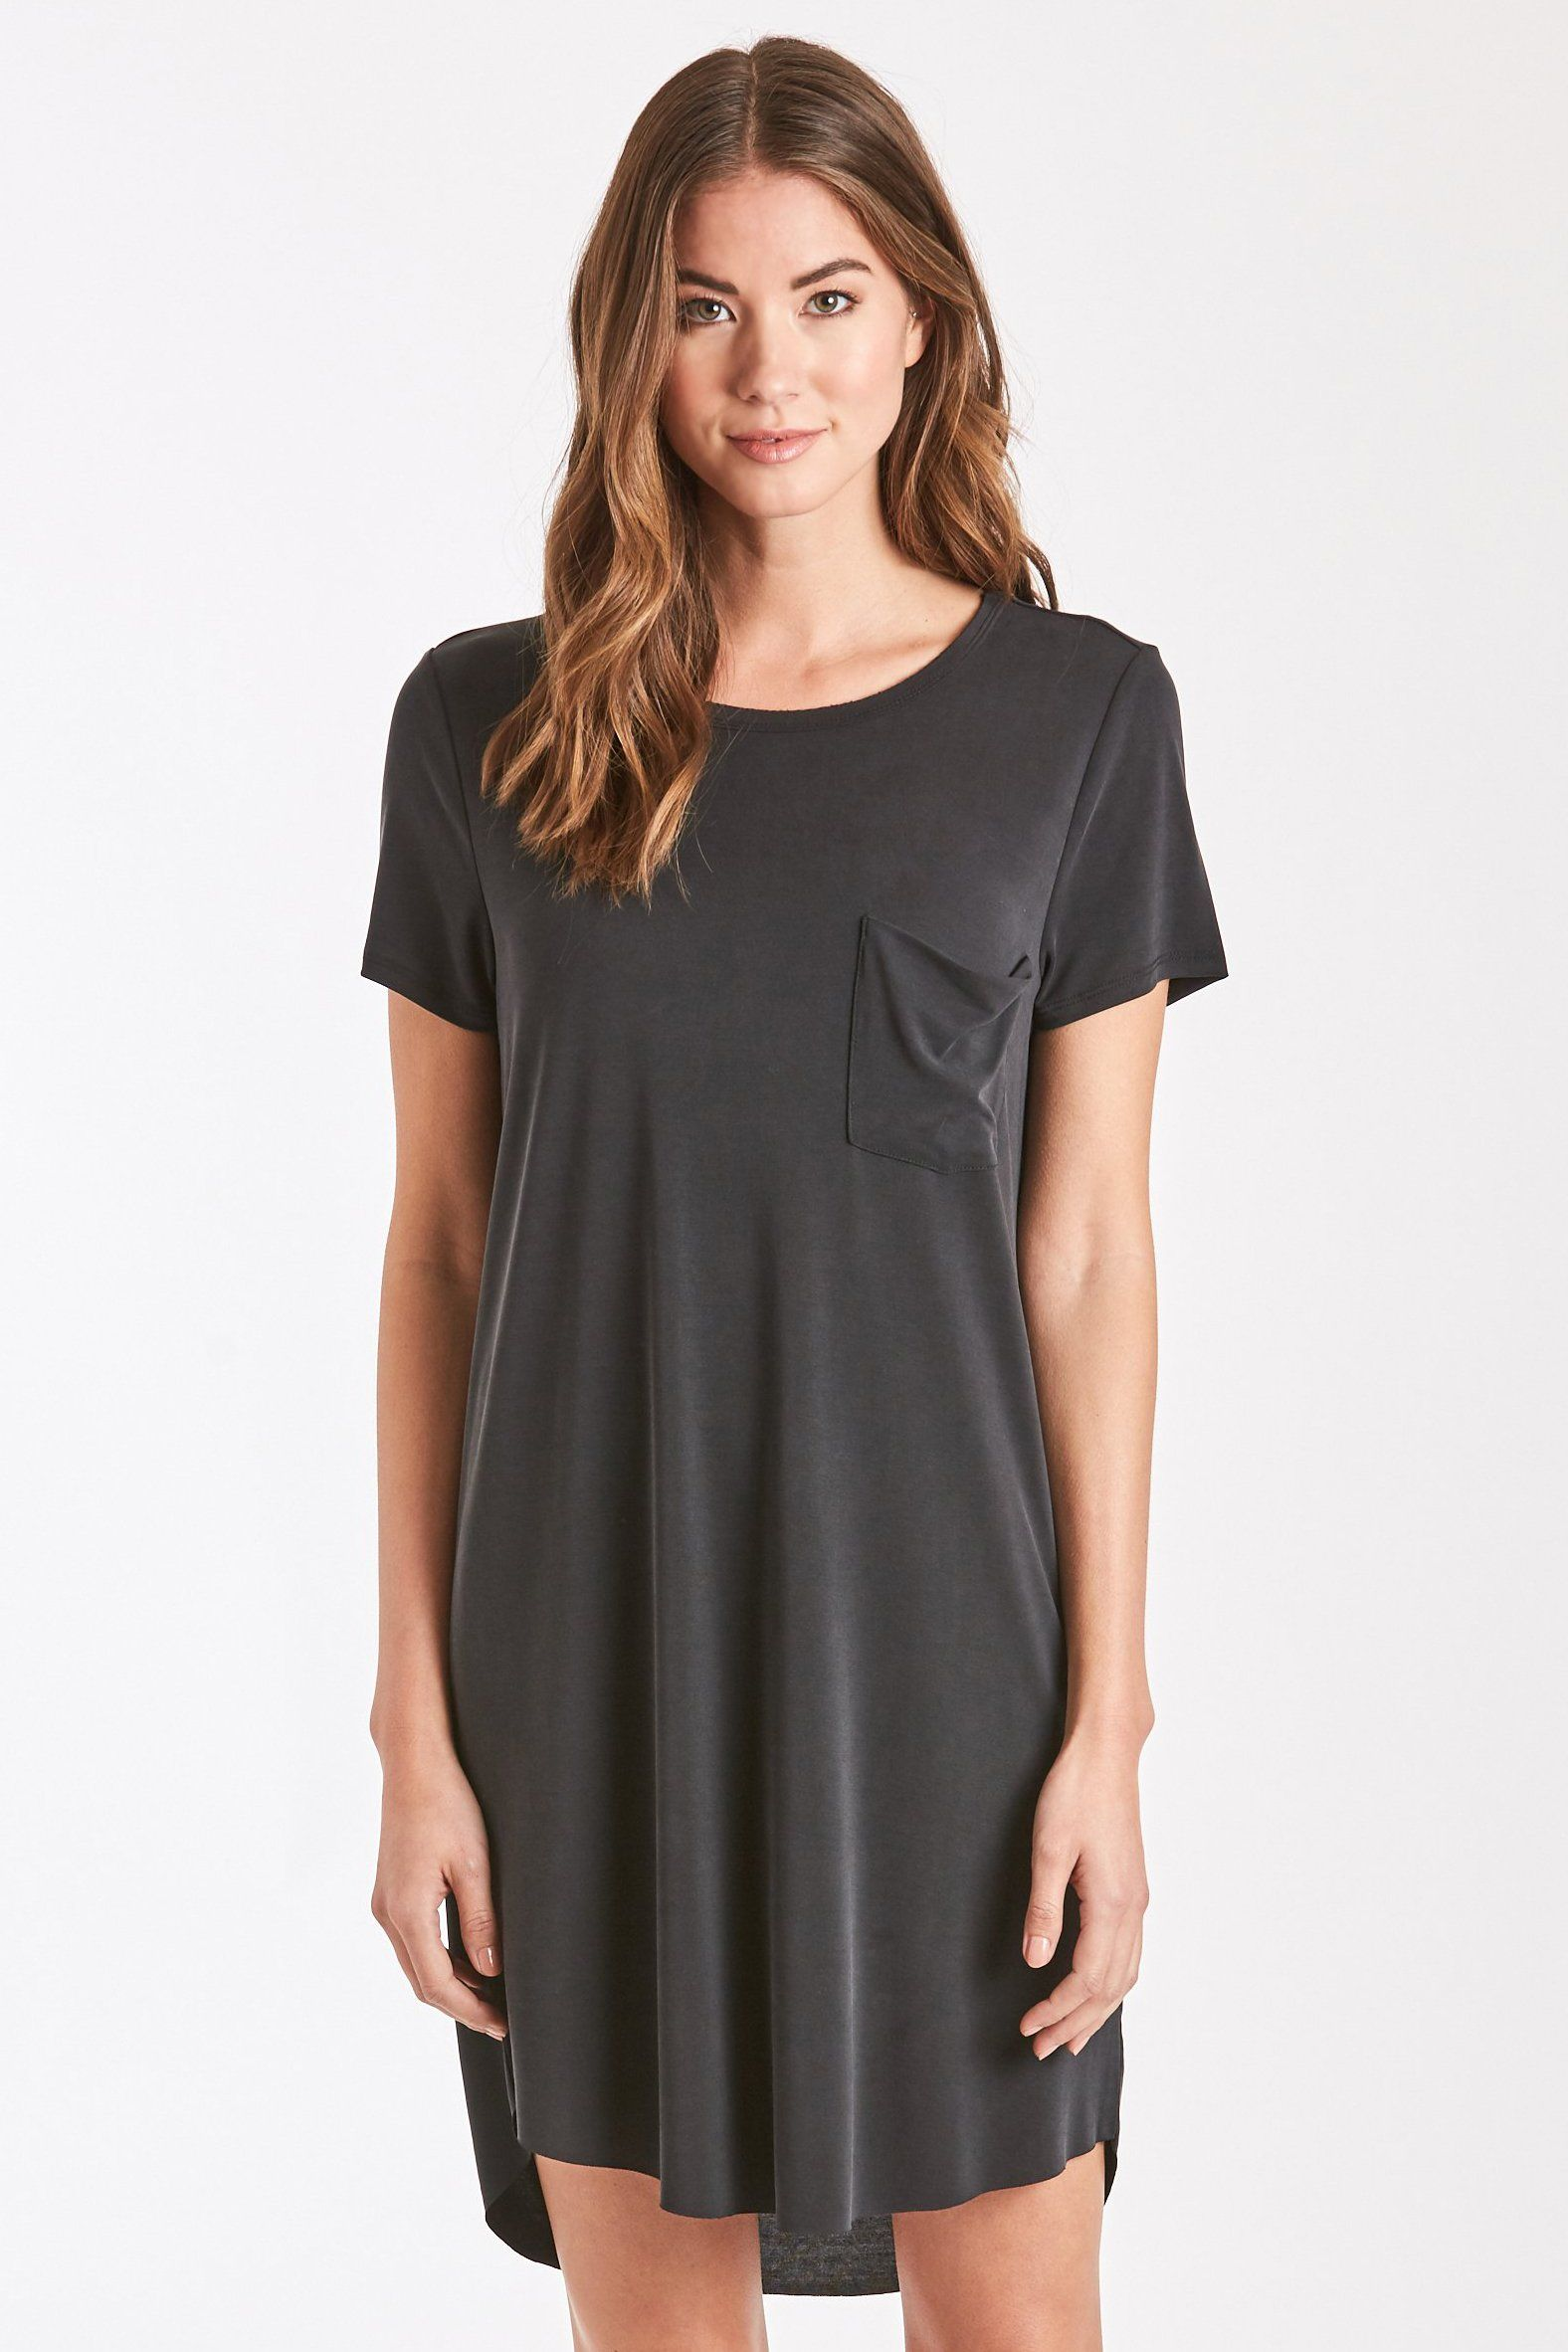 055539bb ... Another Love Clothing. A crew neck tee shirt dress featuring side  pockets. The Samantha is cute and comfortable